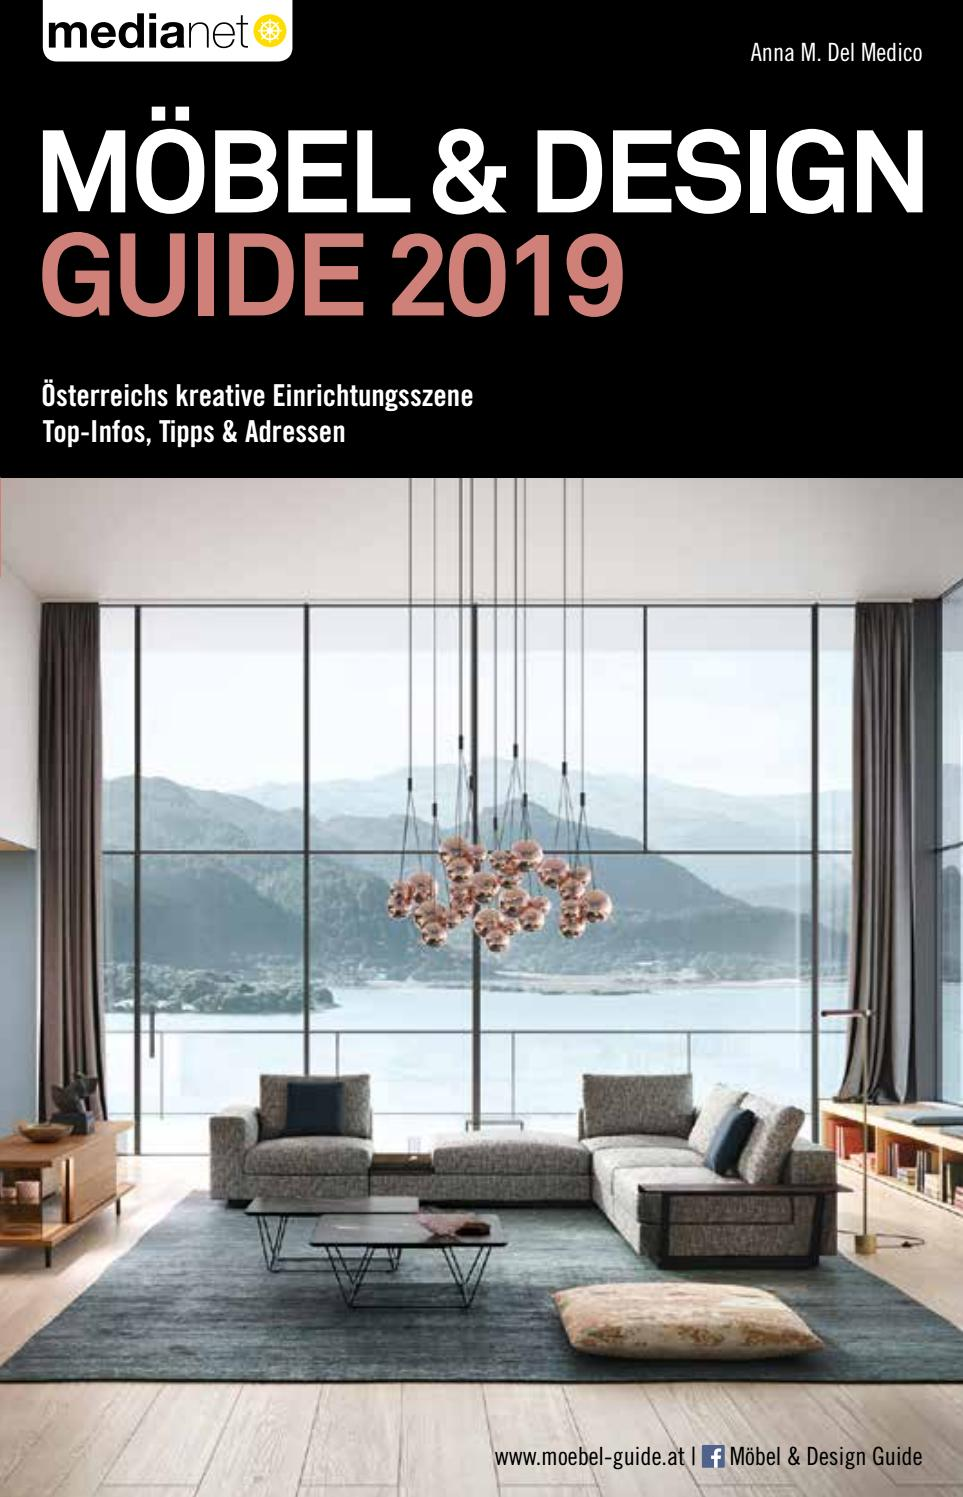 möbel & design guide 2019medianet - issuu